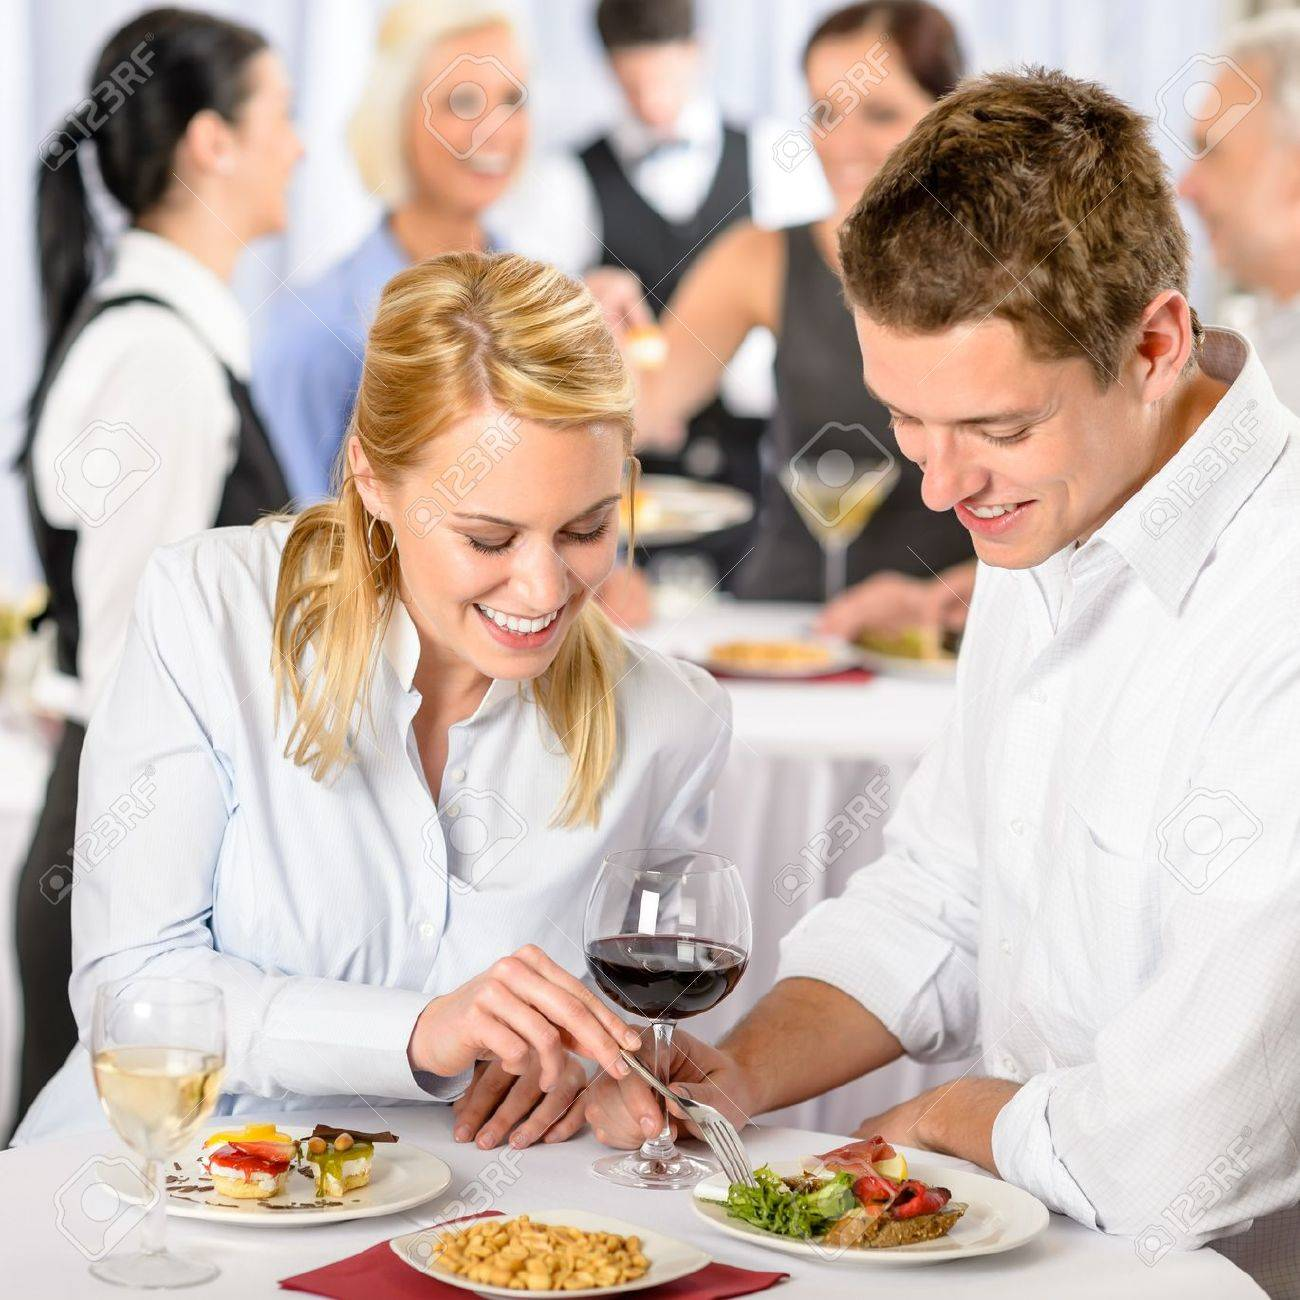 catering company event young colleagues eating at buffet party catering company event young colleagues eating at buffet party stock photo 13736850